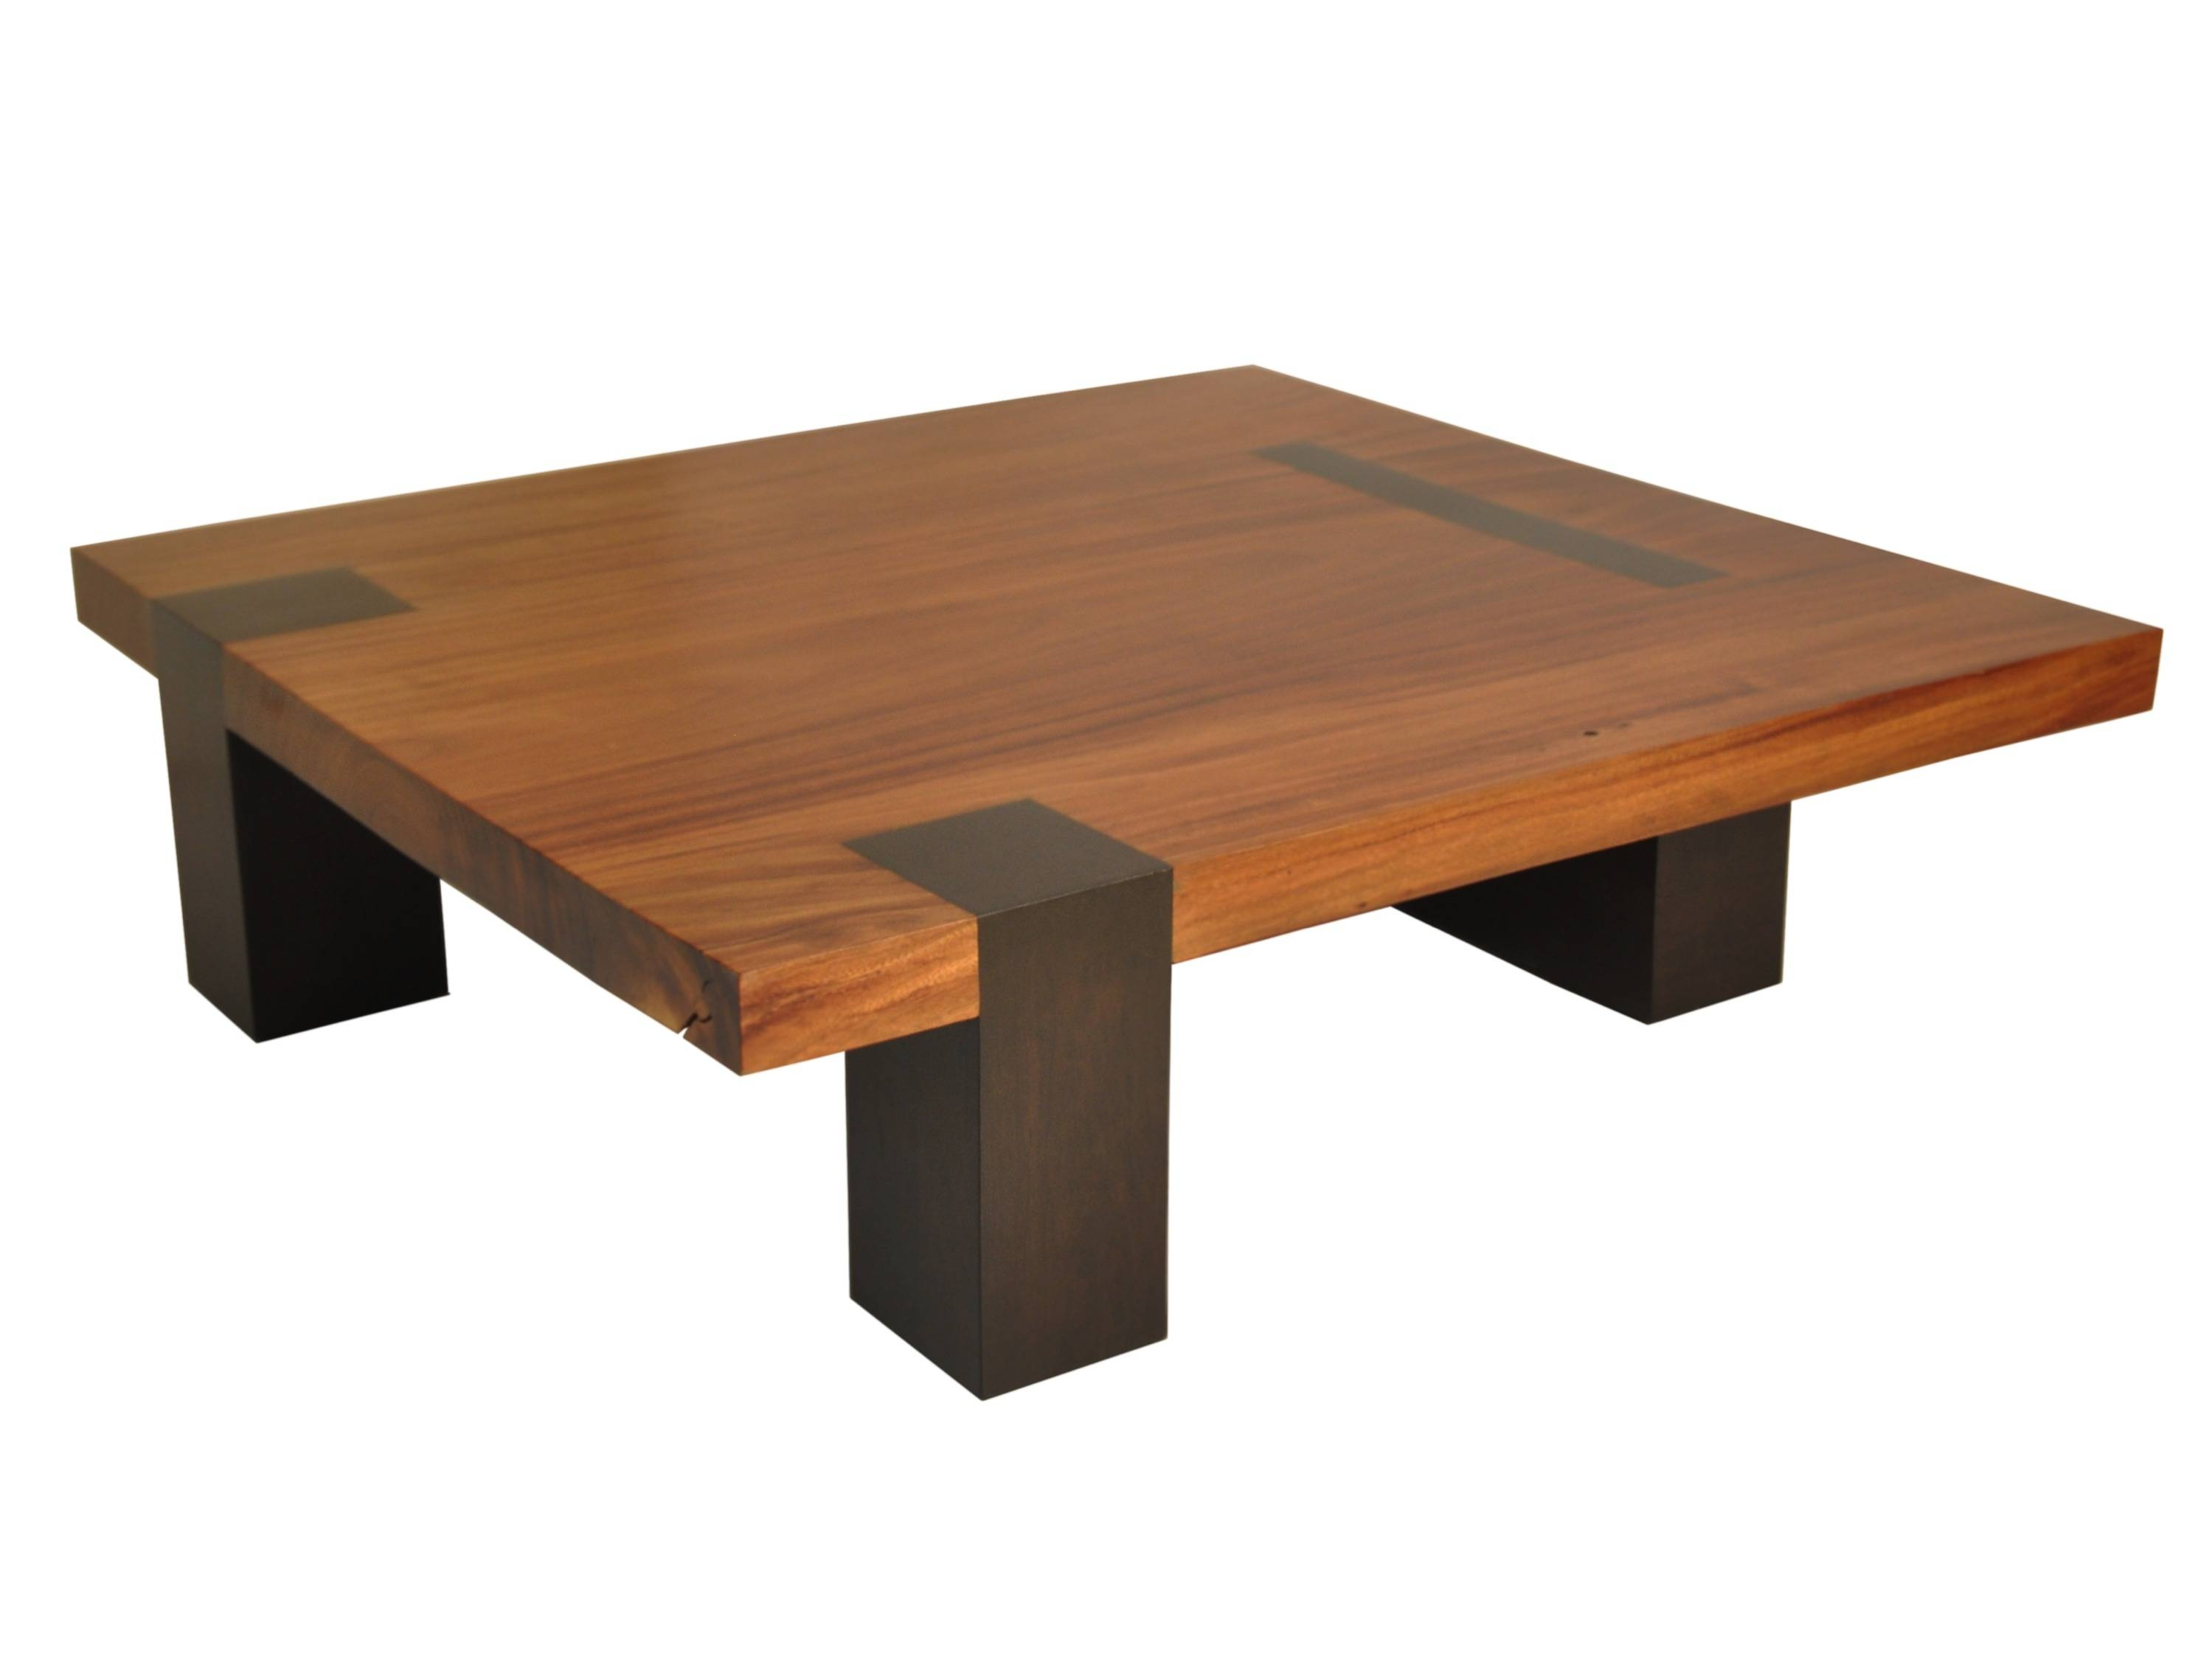 Oversized Square Wood Coffee Table | Coffee Tables Decoration within Wooden Coffee Tables With Storage (Image 24 of 30)